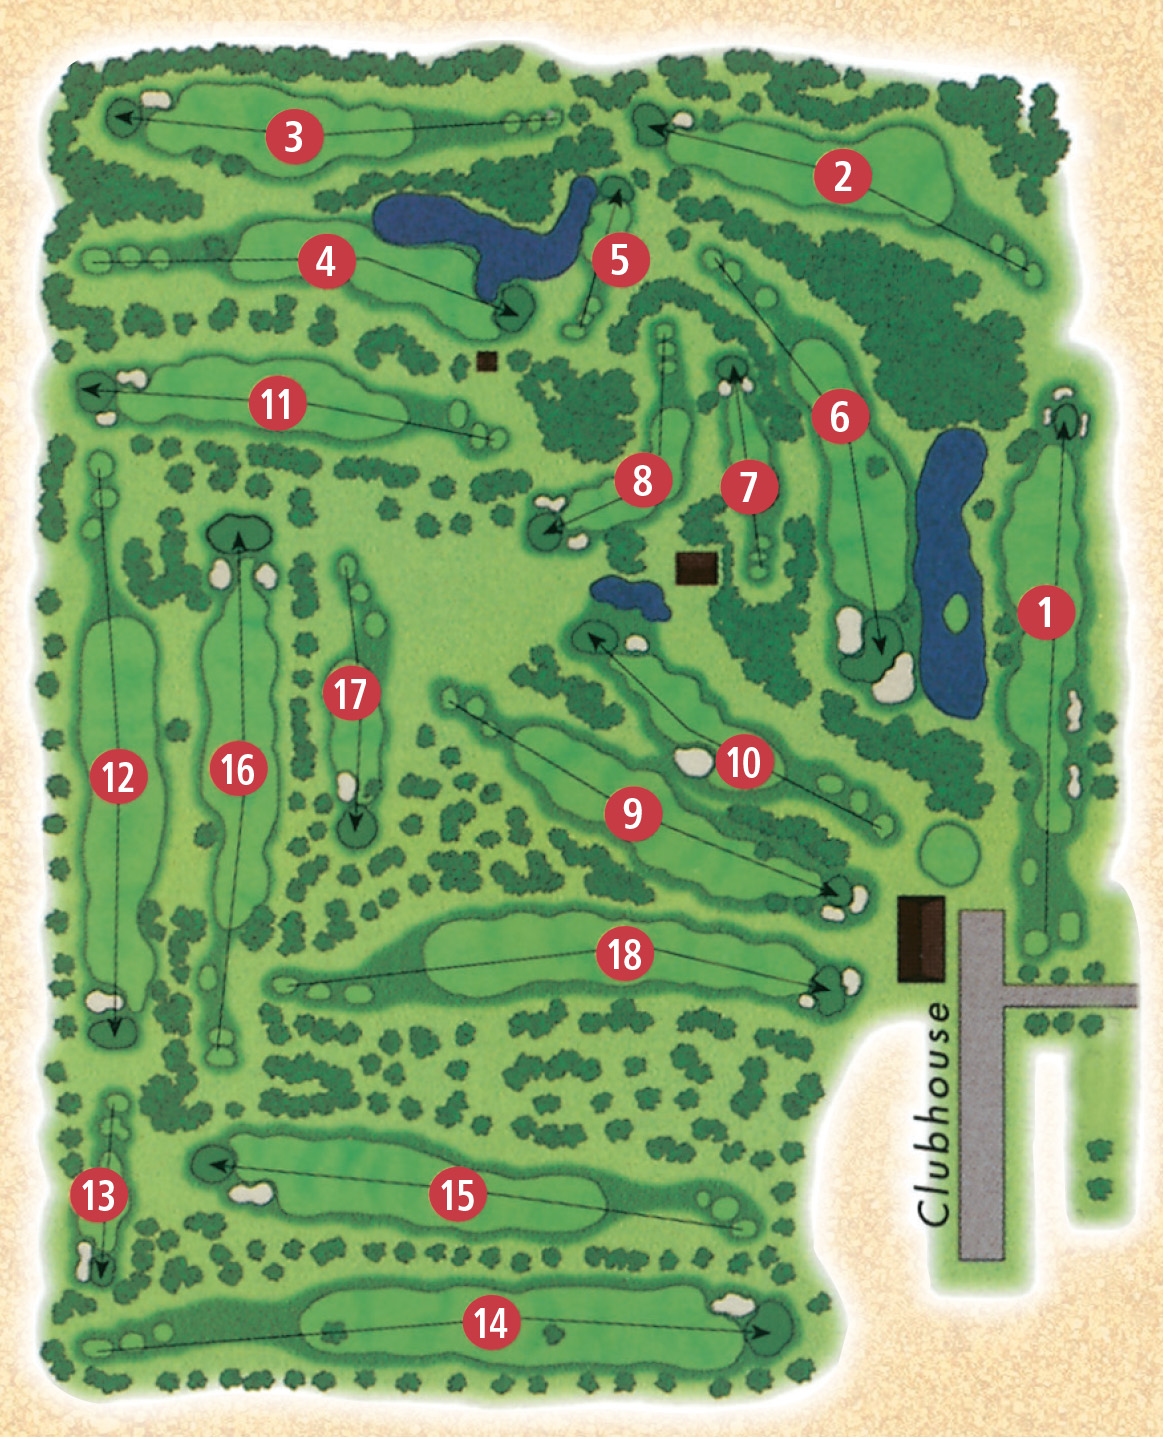 Grand Centre Golf and Country Club - Course Map on golf course layout maps, golf green maps, golf courses map of us, golf yardage book,